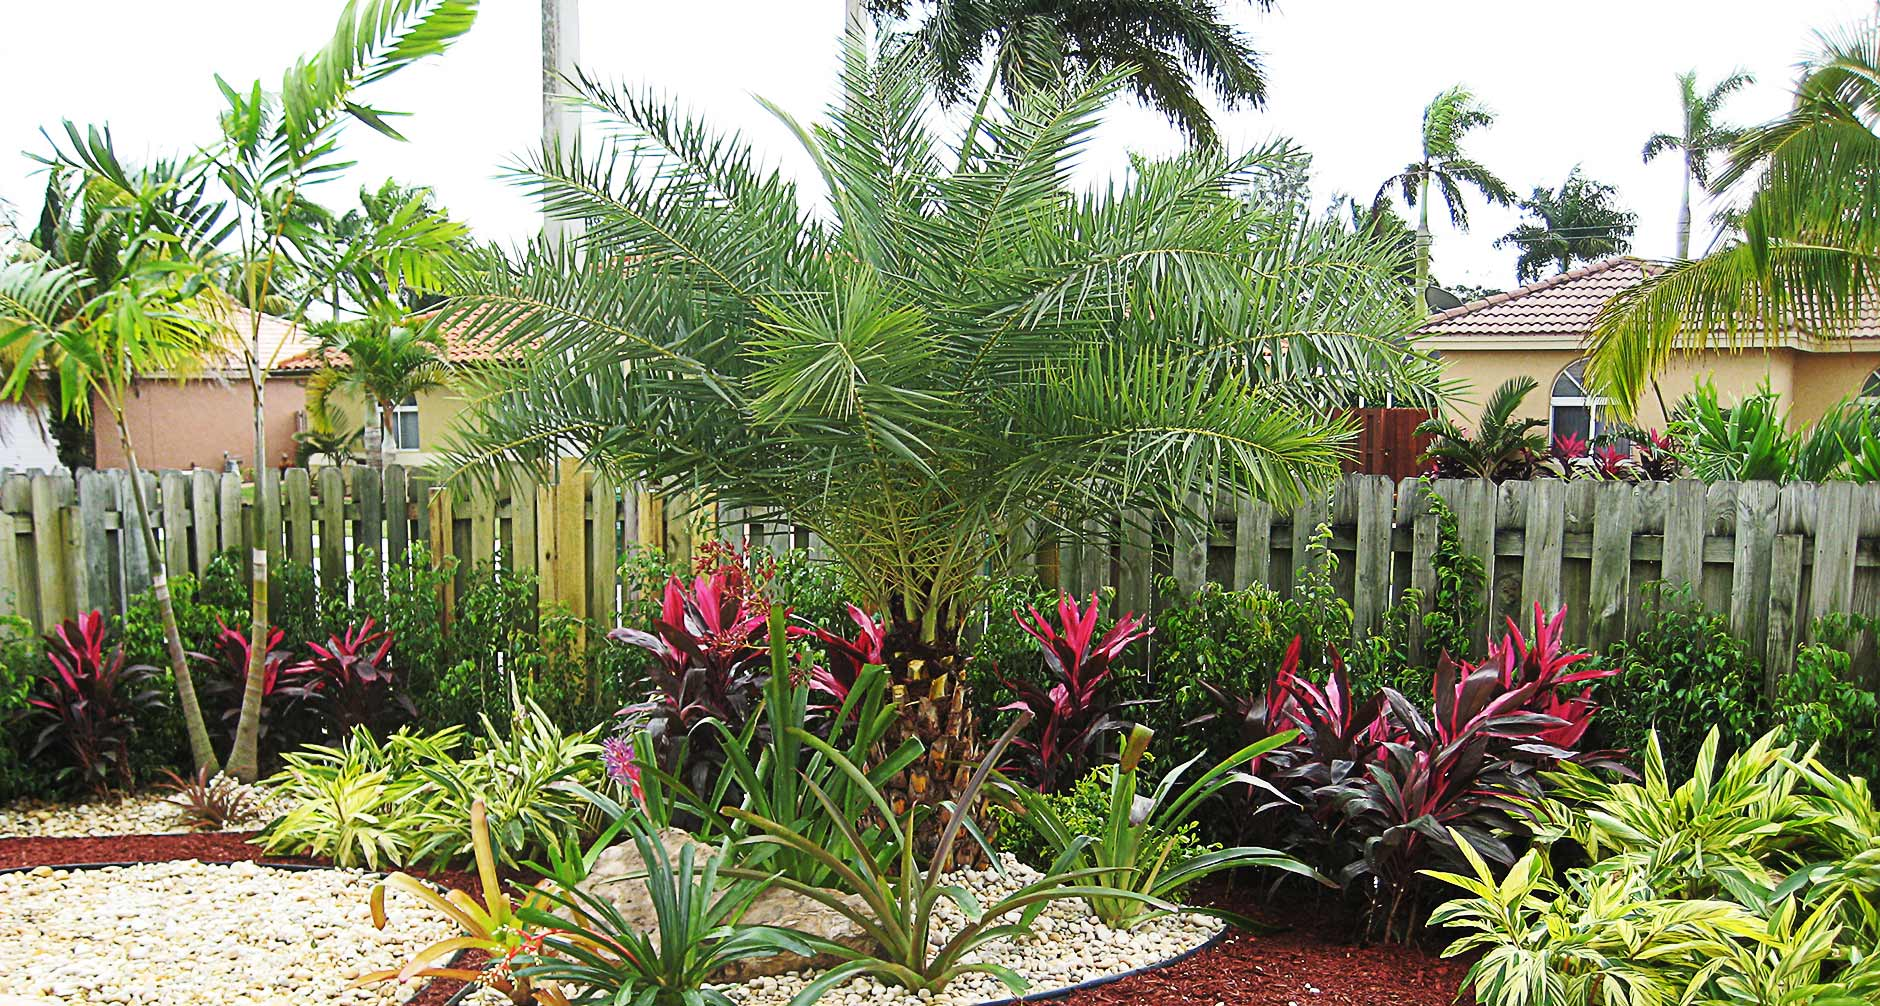 Bl landscape design photos florida diy for Plant landscape design